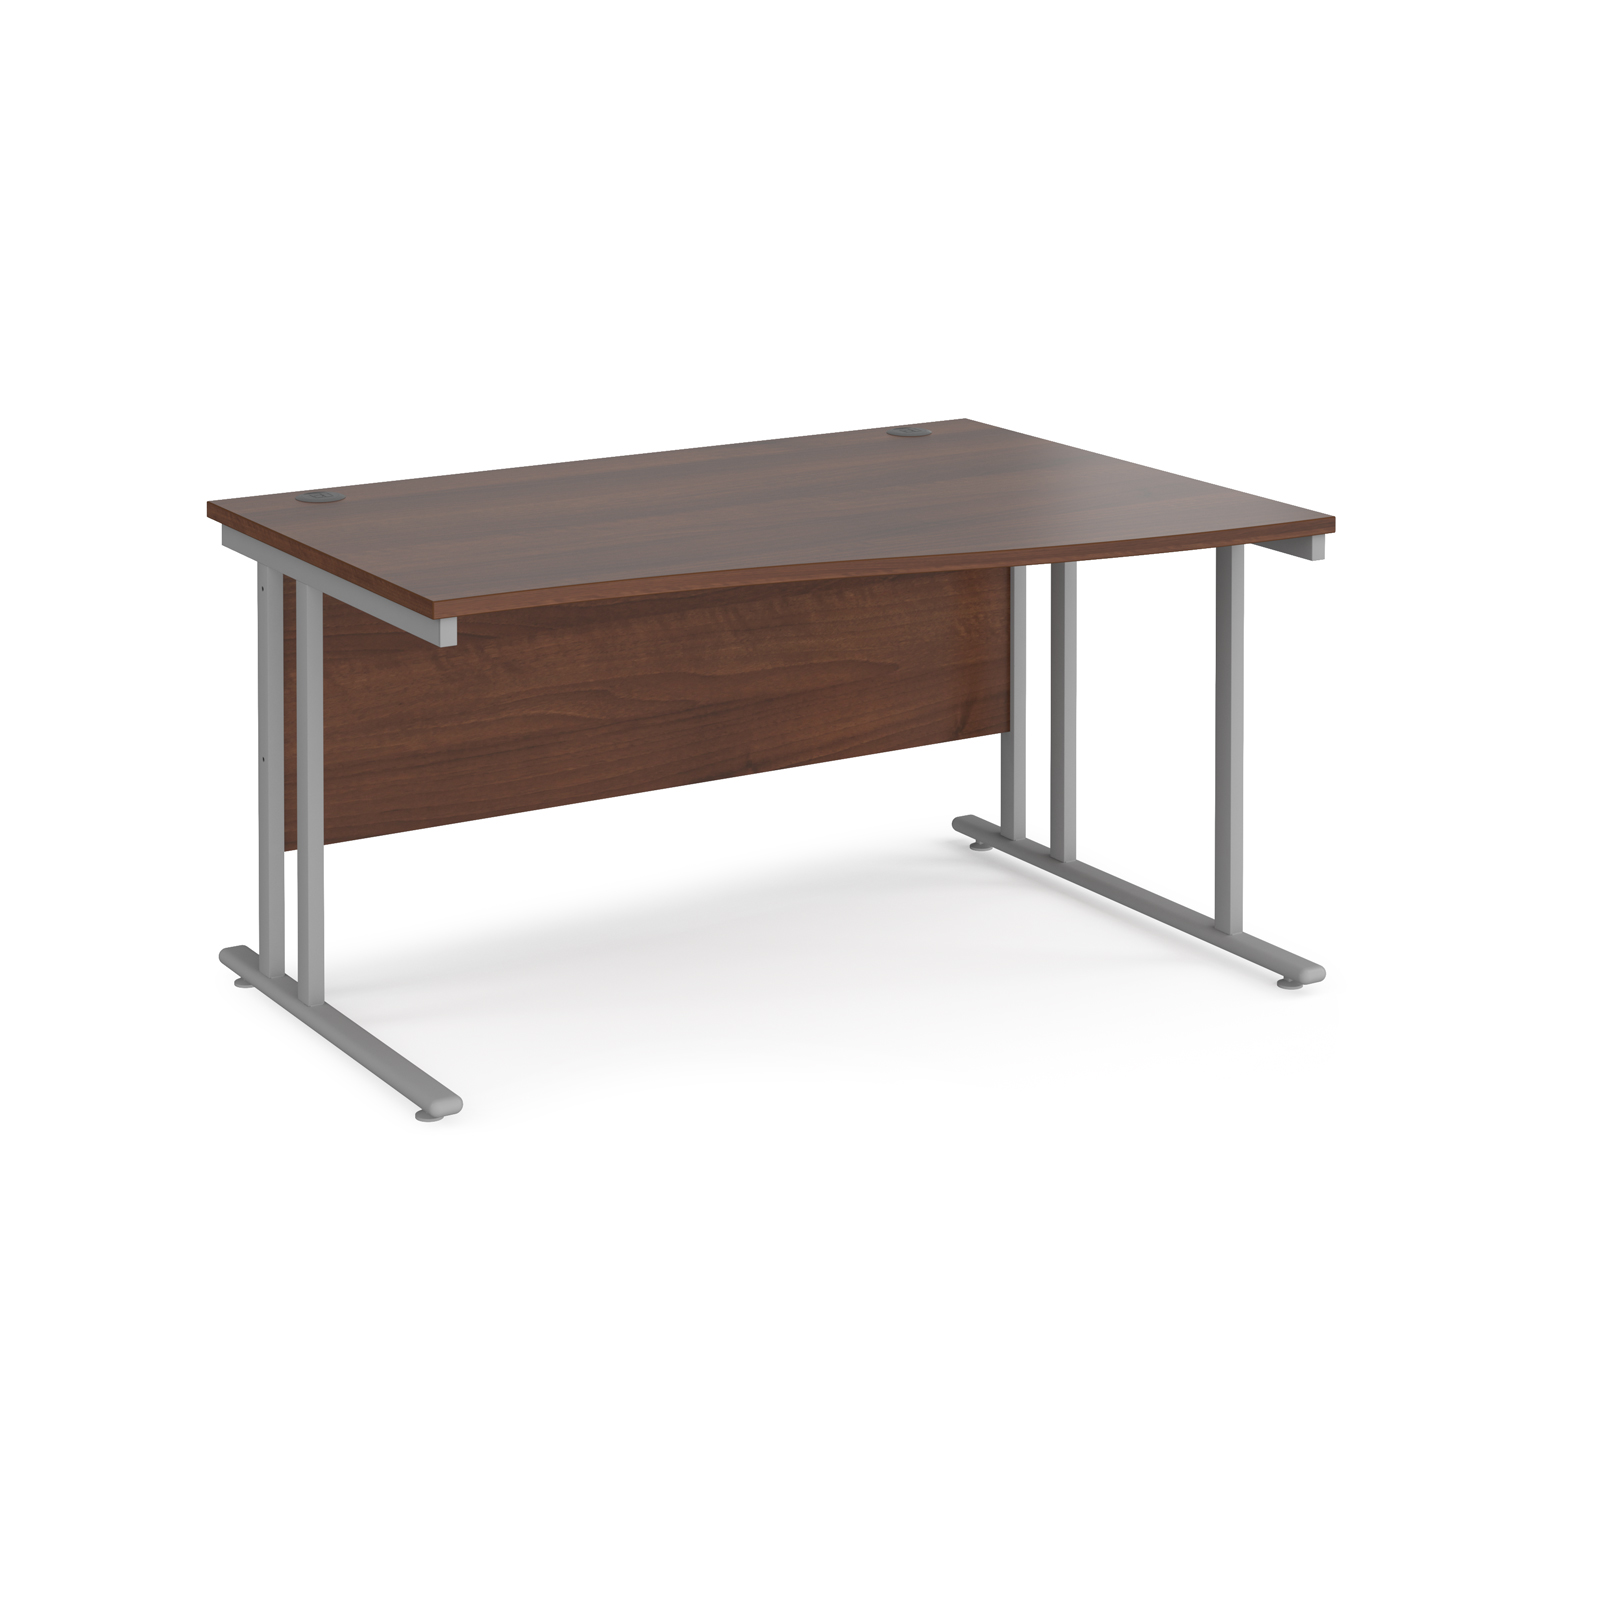 Maestro 25 right hand wave desk 1400mm wide - silver cantilever leg frame, walnut top